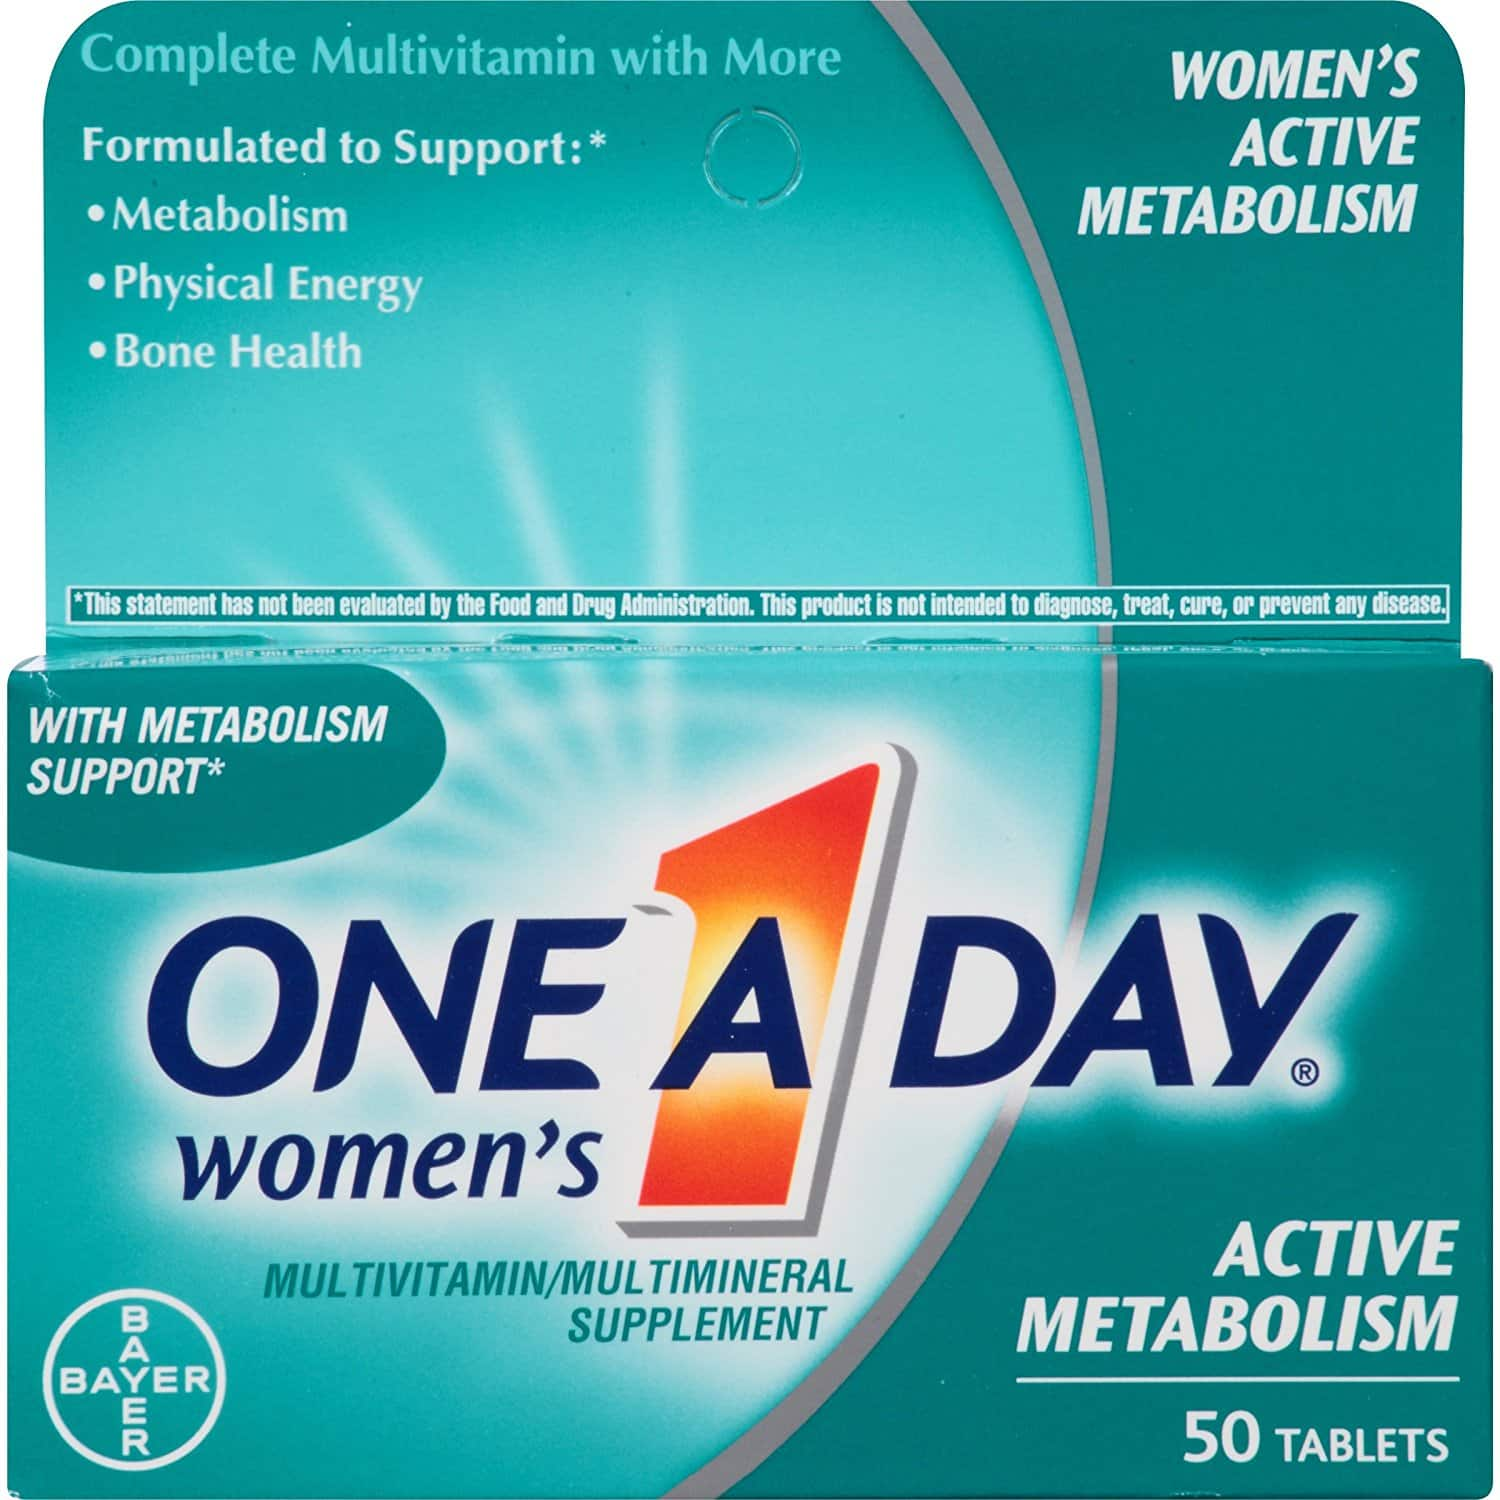 Amazon Add-On: One A Day Women's Active Metabolism Multivitamin, 50 Count - $4.94